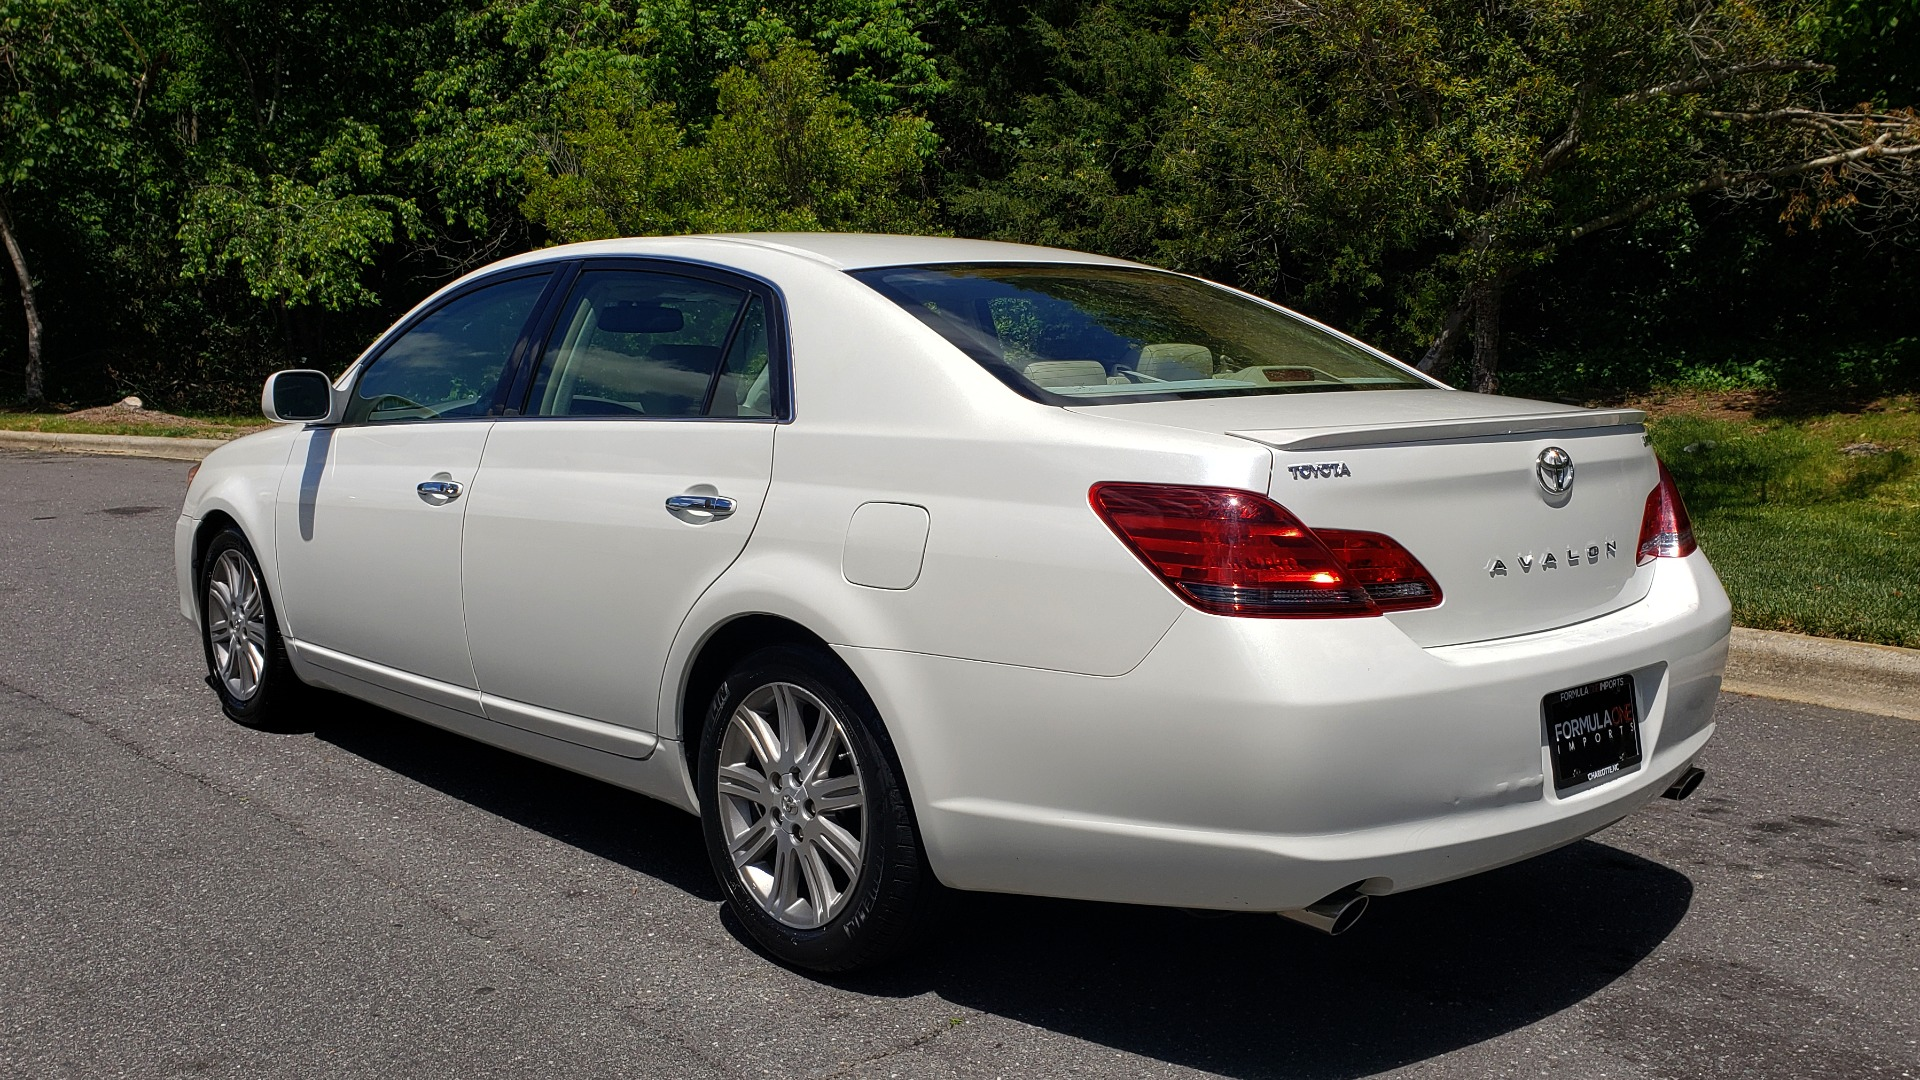 Used 2008 Toyota AVALON LIMITED V6 / FWD / SUNROOF / DYN RADAR CRUISE / BRAKE ASST for sale Sold at Formula Imports in Charlotte NC 28227 3